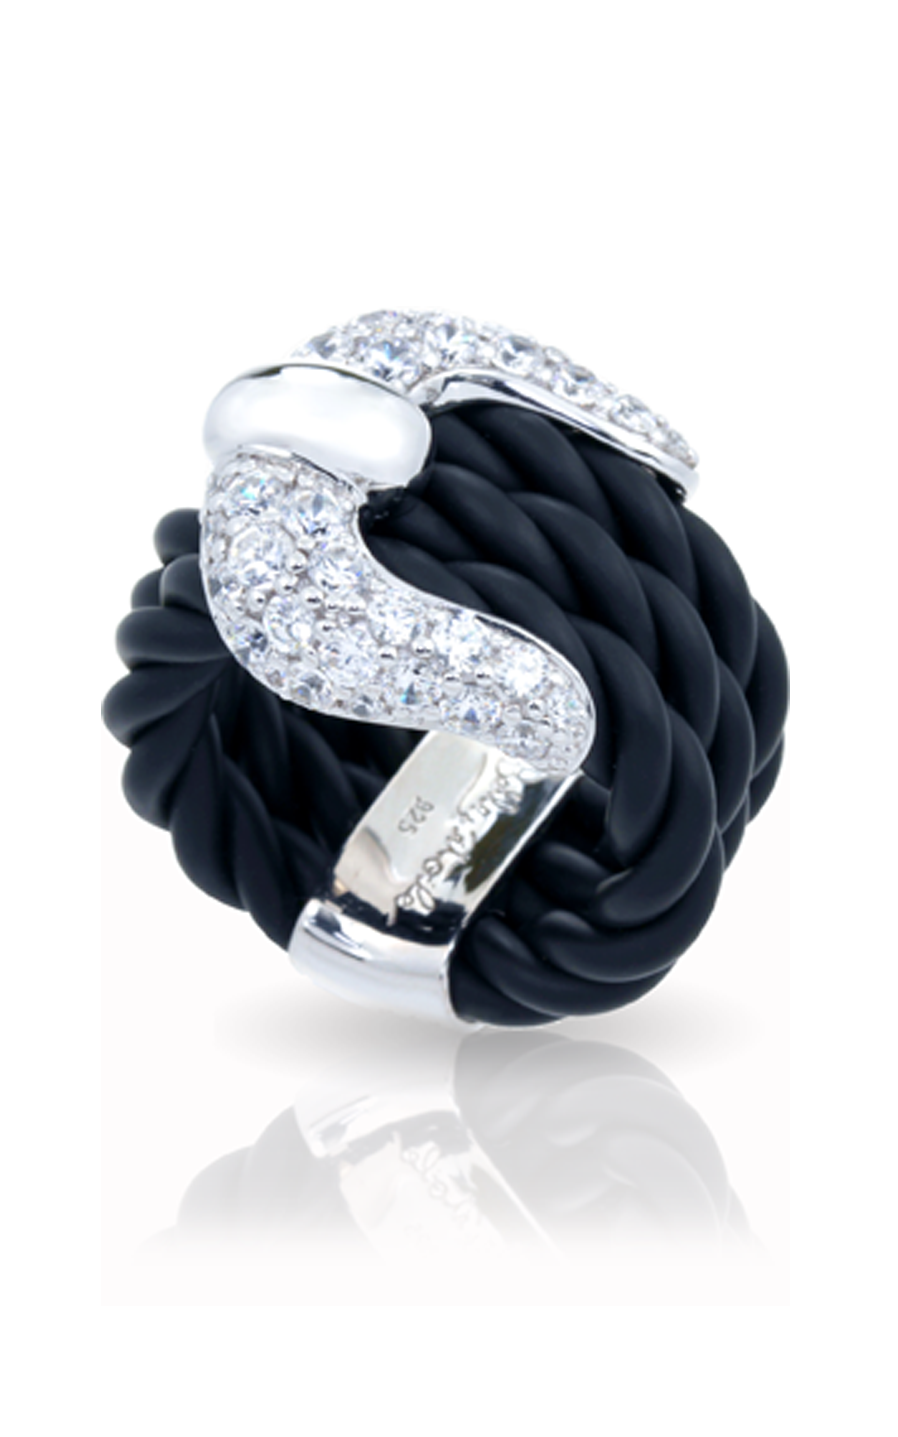 Belle Etoile Lasso Black Ring 01051010101-6 product image